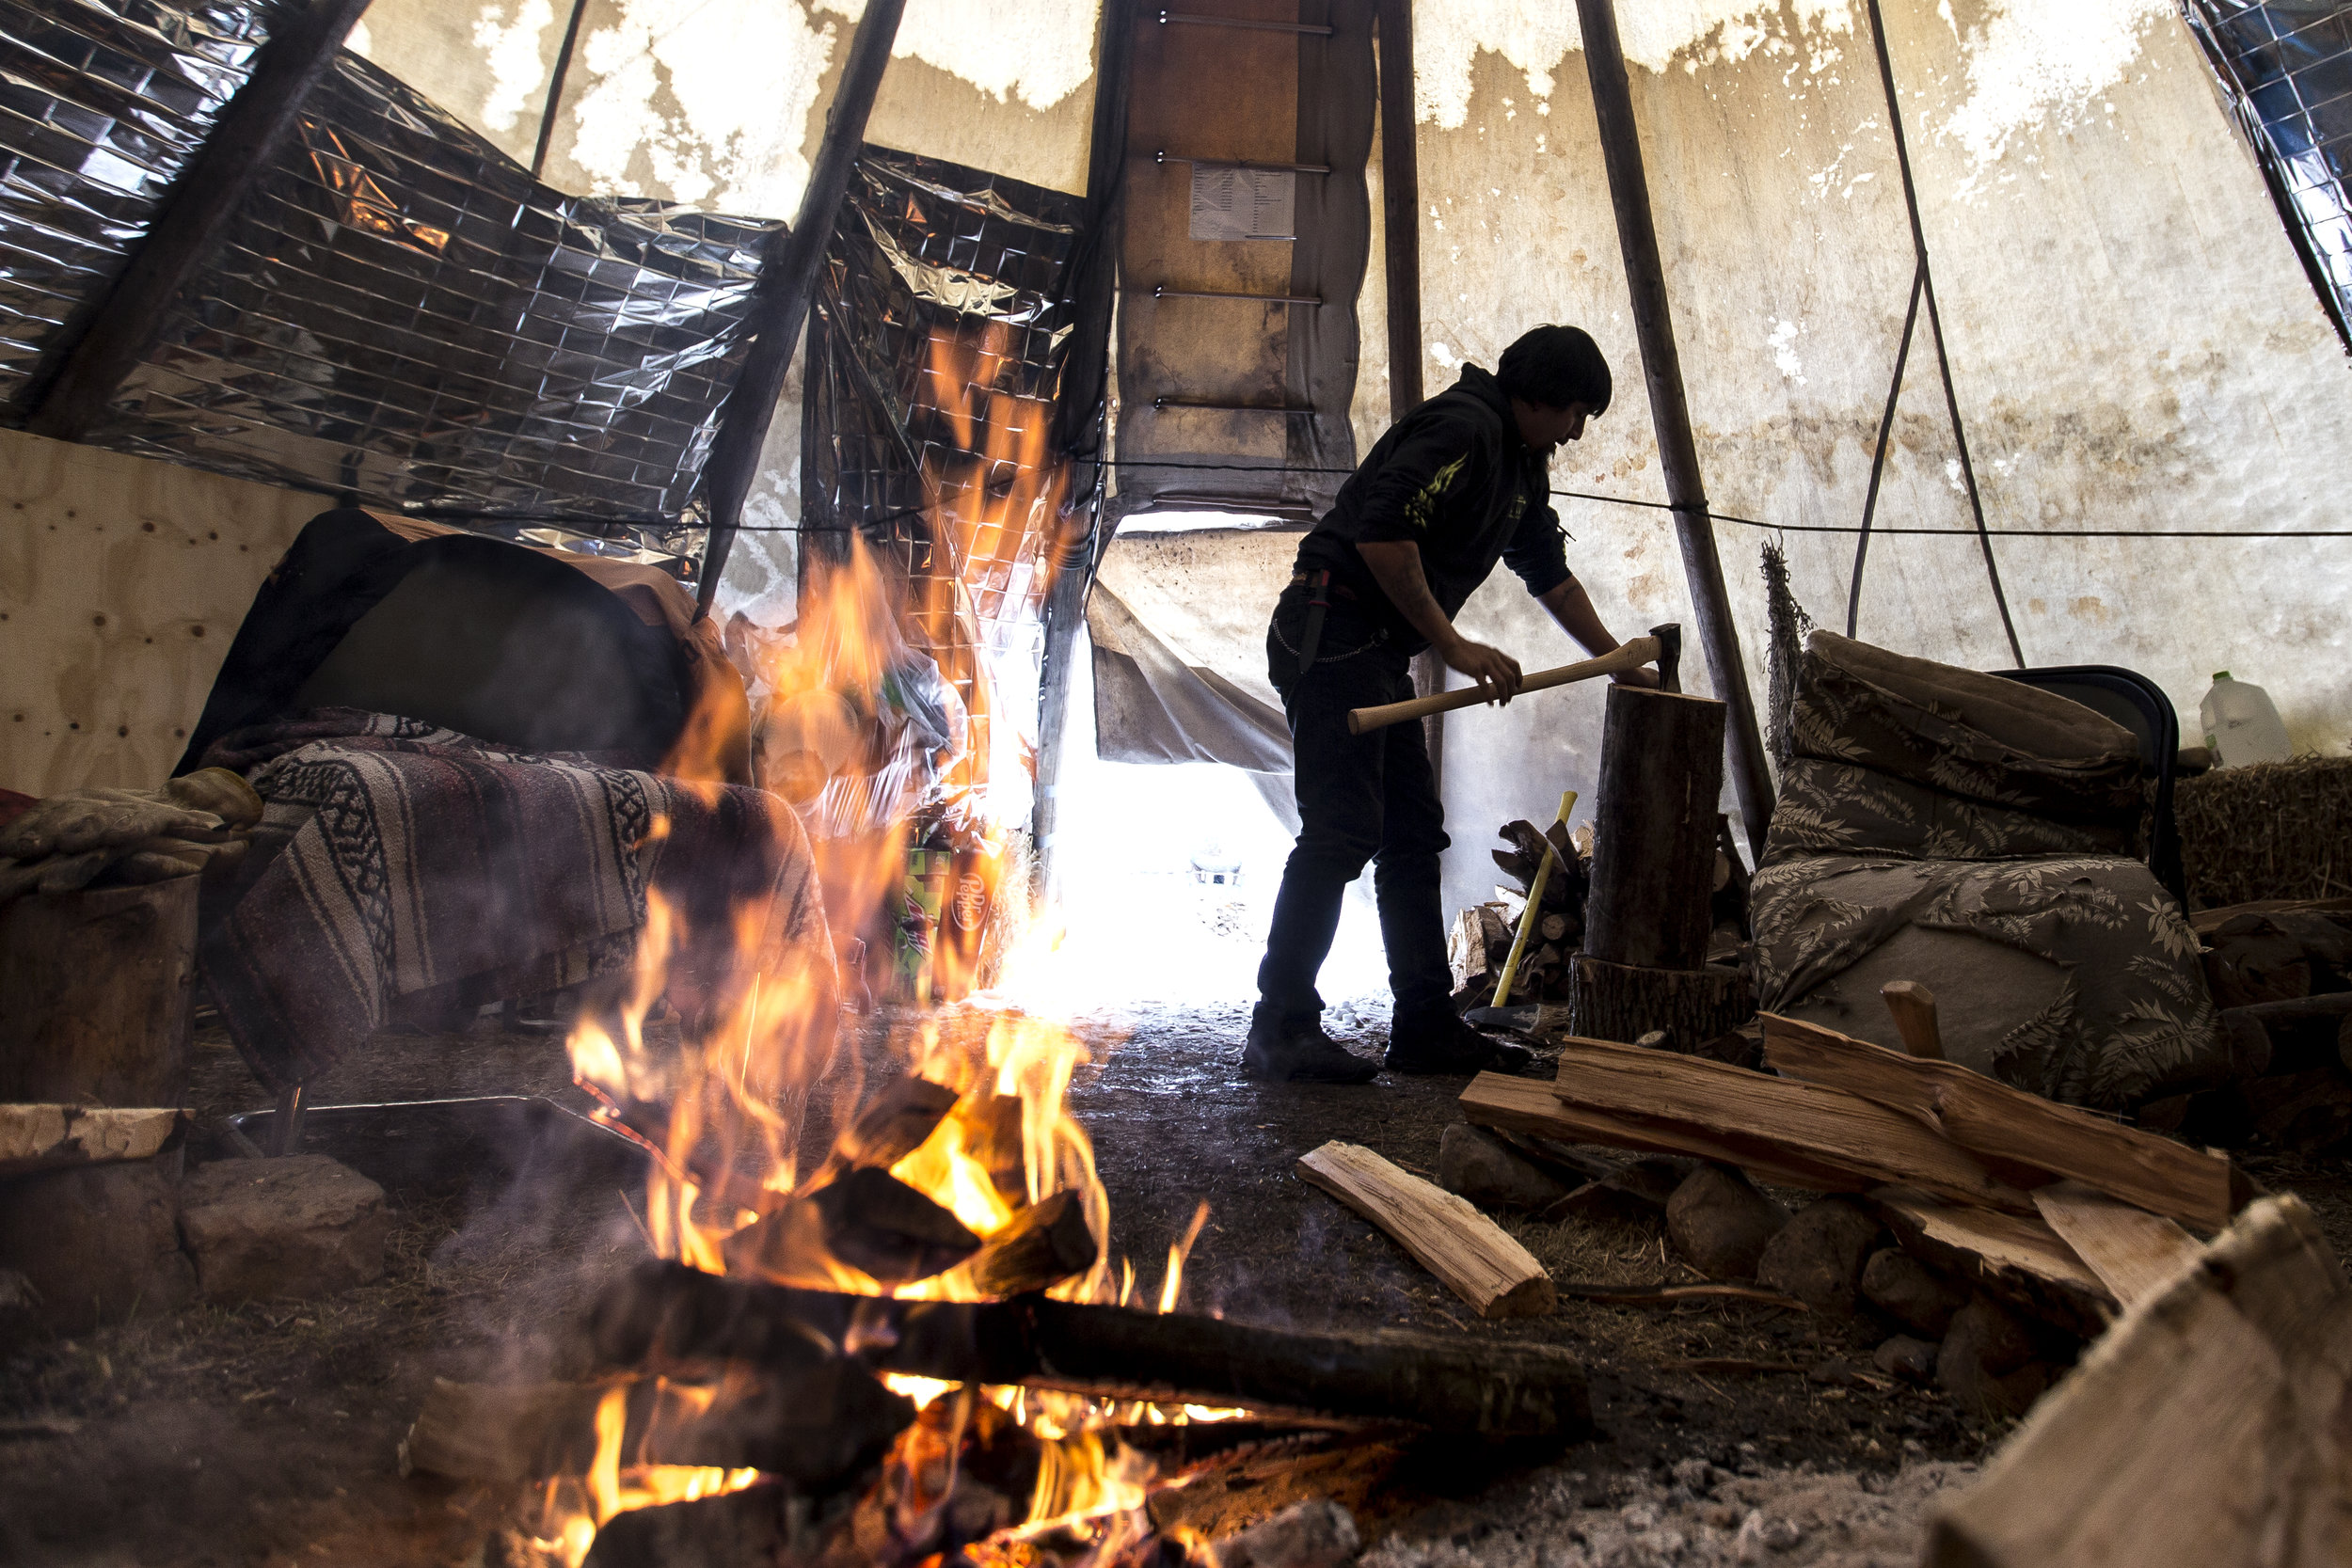 Frank Vandehei chops wood for the fire inside the teepee in Oneida, Wis., Wednesday, December 13, 2017.